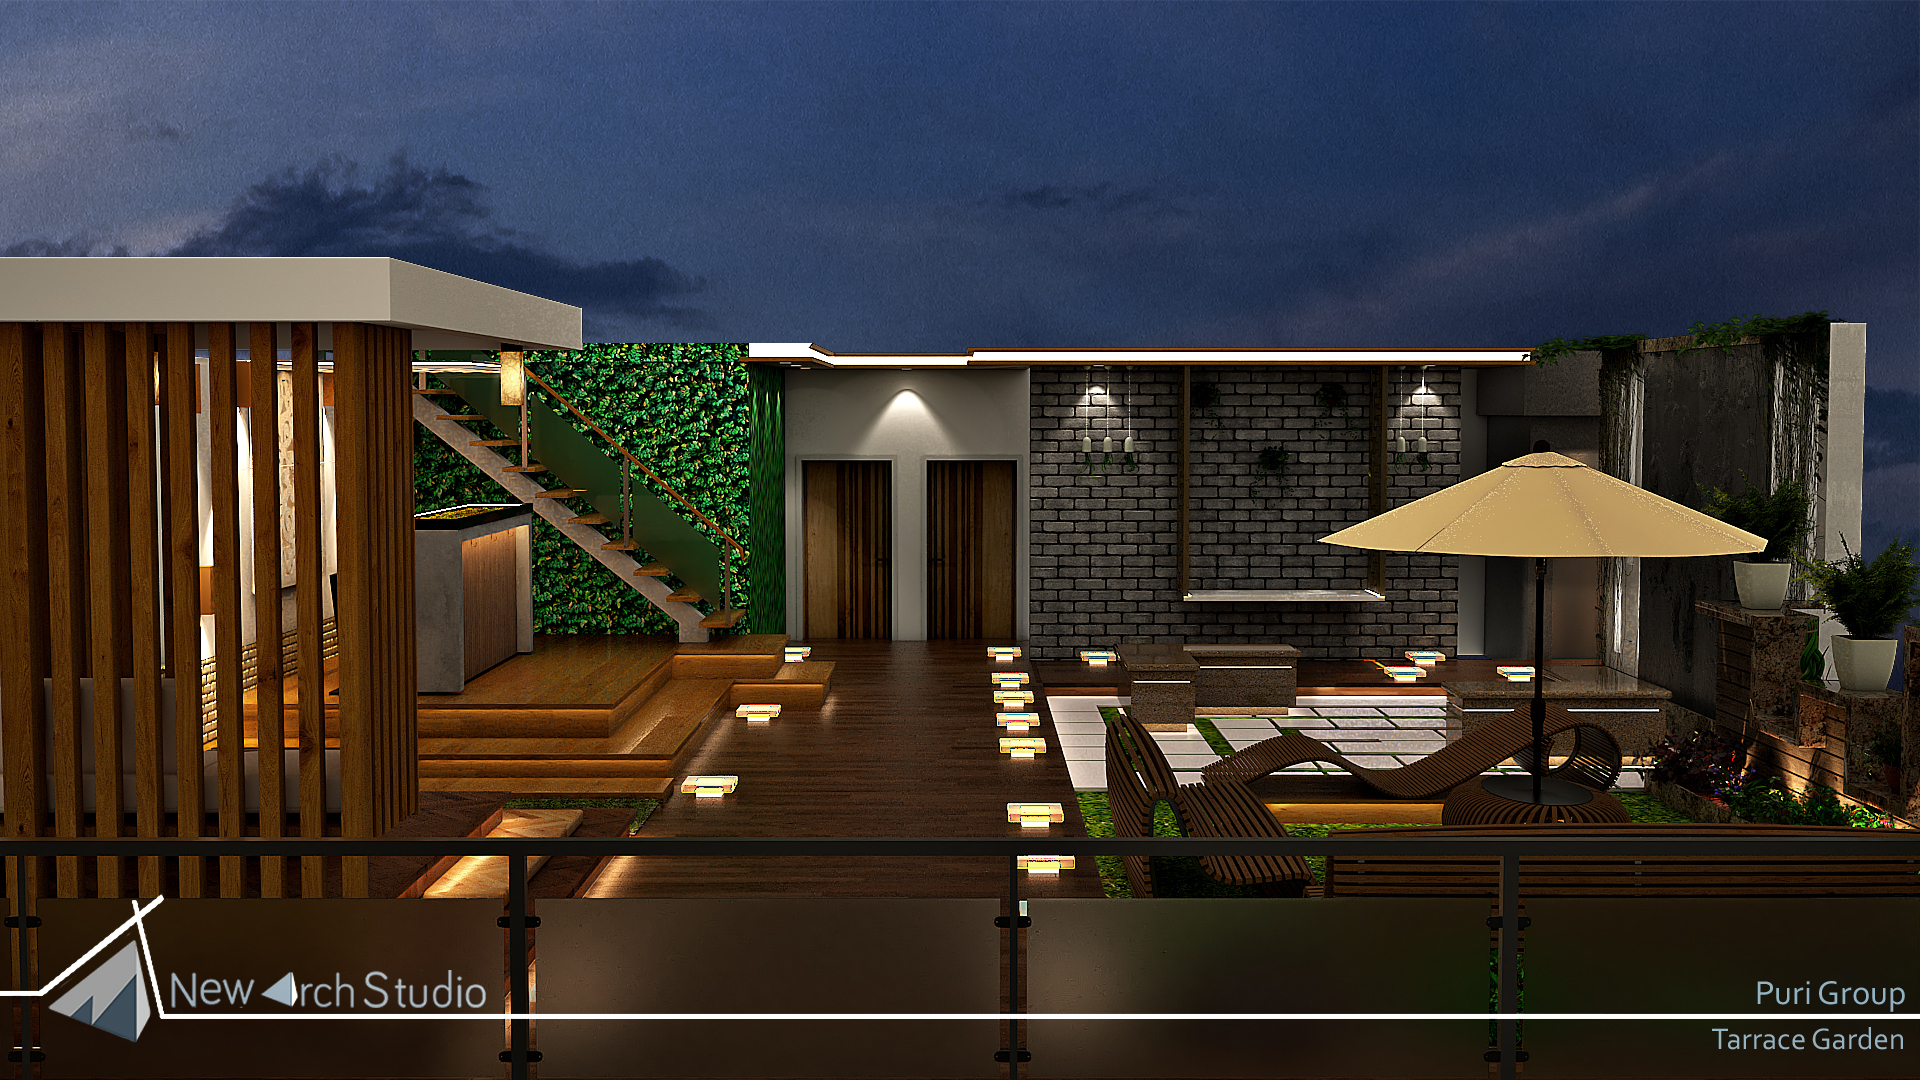 Mr. Puri Group Terrace garden Interior Design Done By New Arch Studio